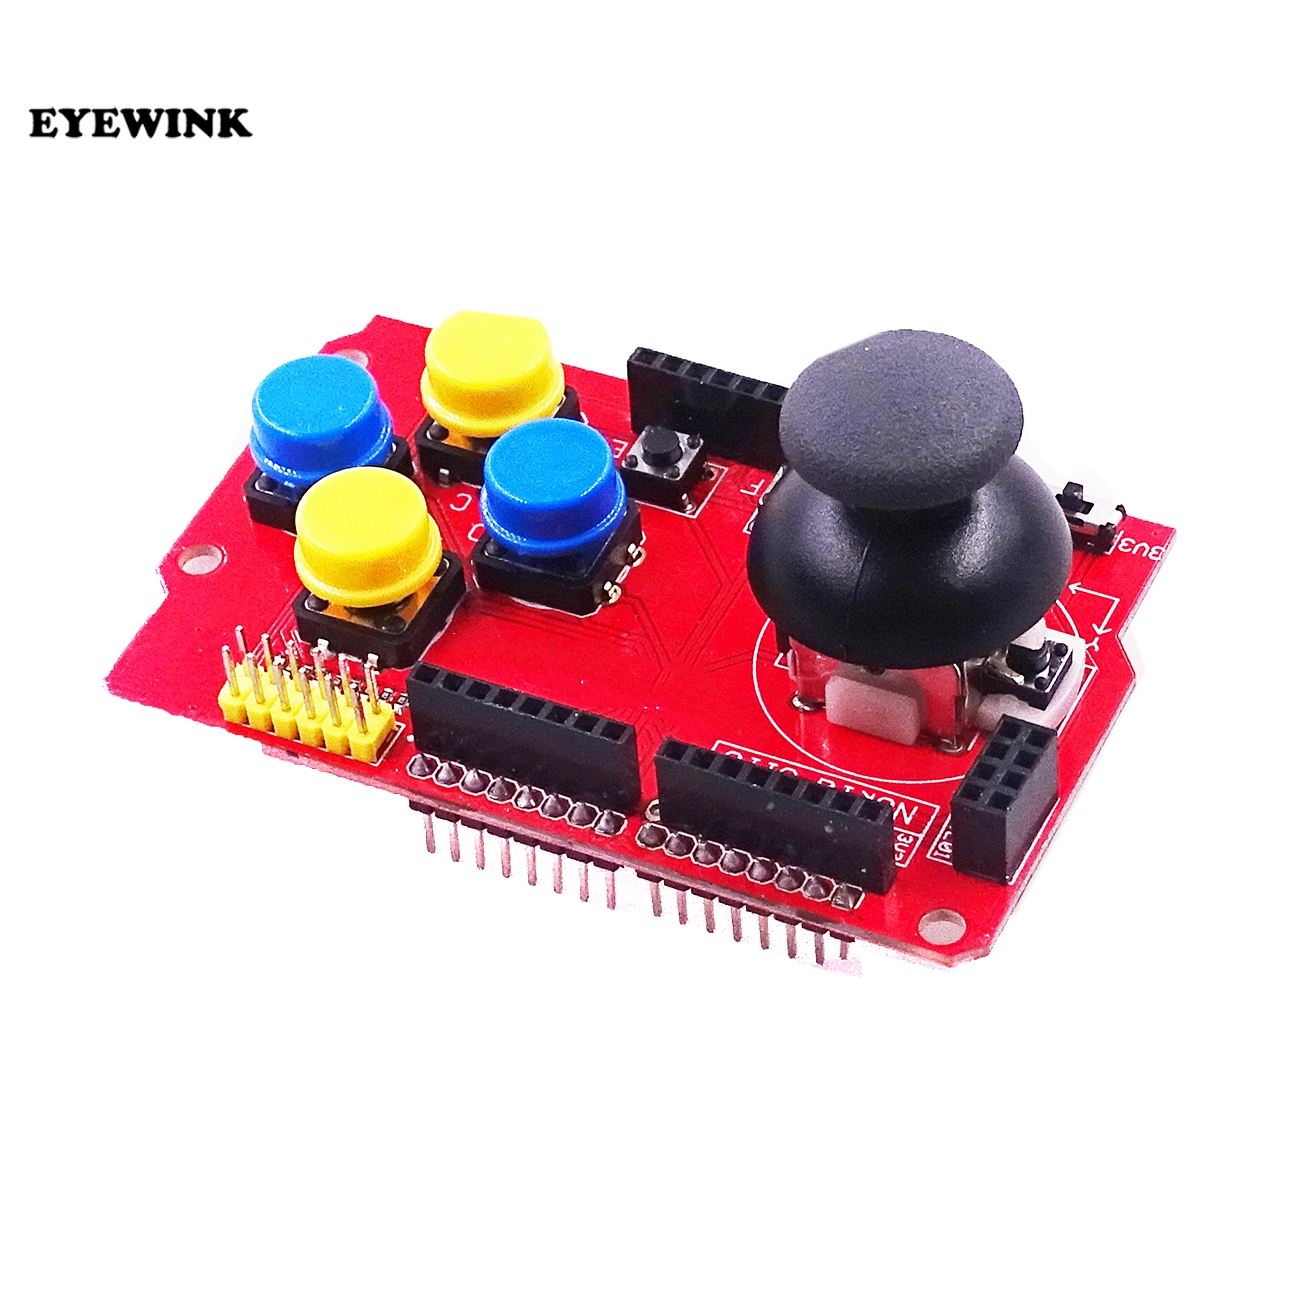 Smart Electronics Integrated Circuit Joystick Shield V12 For Arduino Diy Kit In Production Machinery From Electronic Components Supplies On